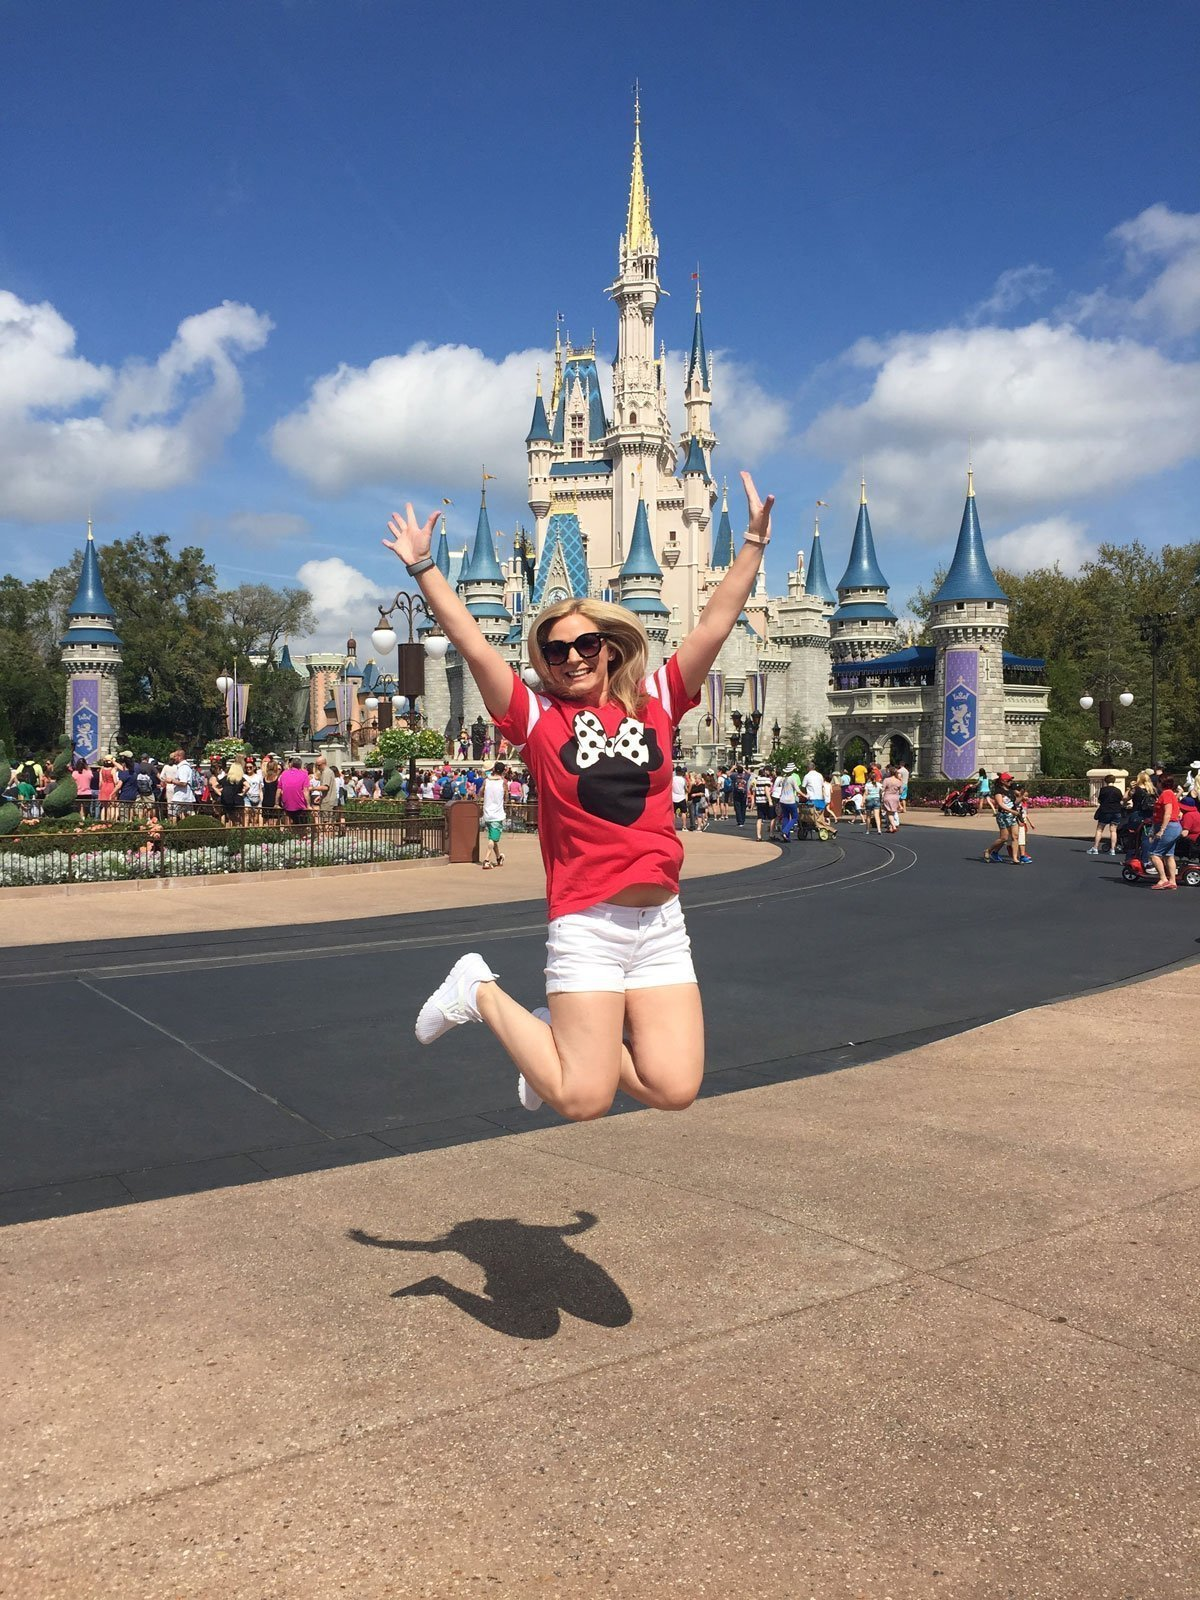 Jumping in front of Cinderella's Castle at Magic Kingdom